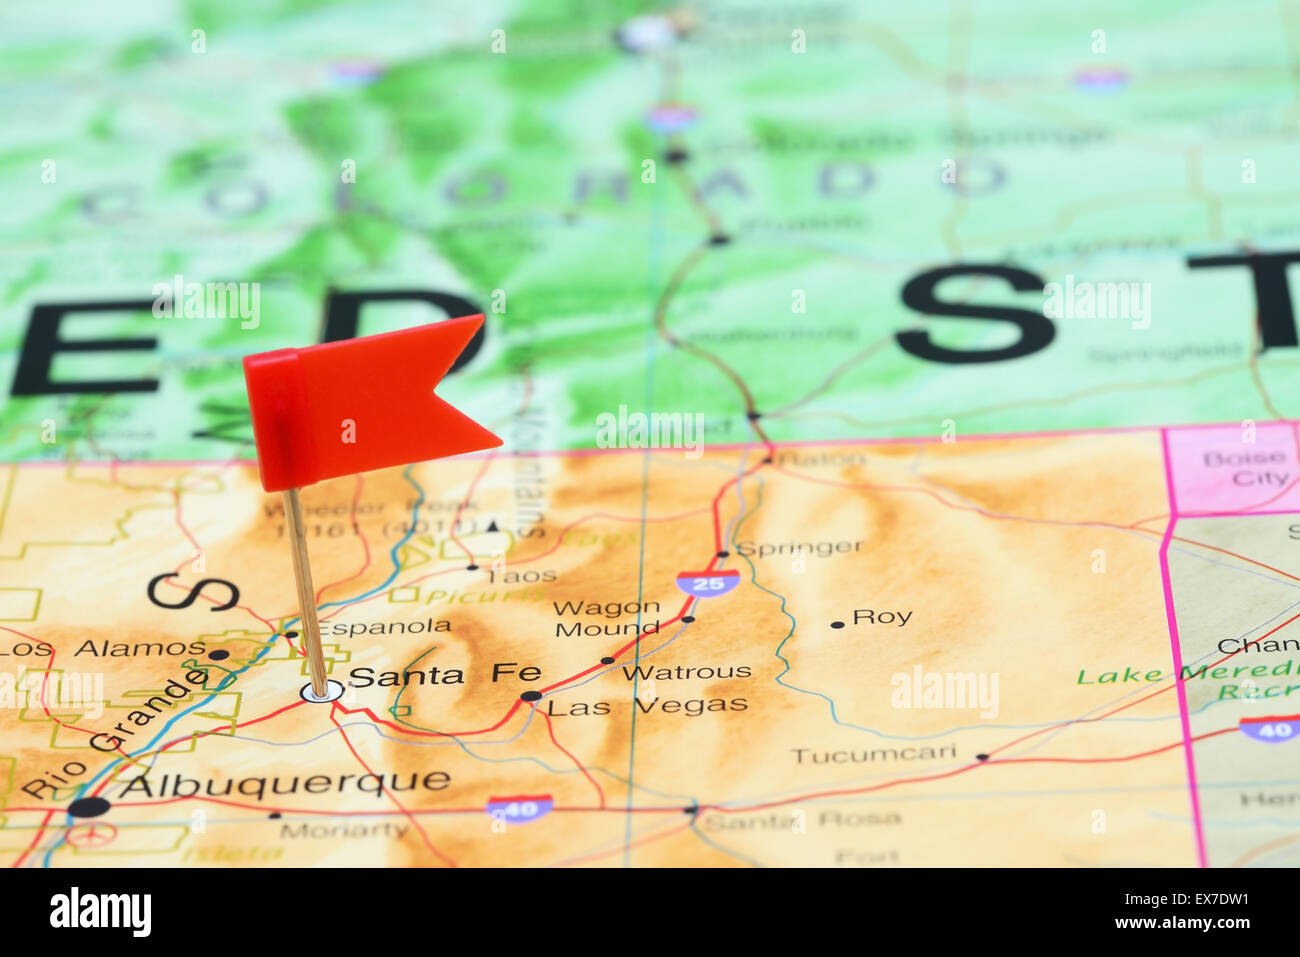 Santa Fe pinned on a map of USA Stock Photo: 84987085 - Alamy on grand canyon map in usa, seattle map in usa, hot springs map in usa, philadelphia map in usa, boston map in usa, south carolina map in usa, guam map in usa, indianapolis map in usa, montana map in usa, miami map in usa, harrisburg map in usa, iowa map in usa, nebraska map in usa, oregon map in usa, louisiana map in usa, maryland map in usa, virginia map in usa, vermont map in usa, tennessee map in usa, wisconsin map in usa,